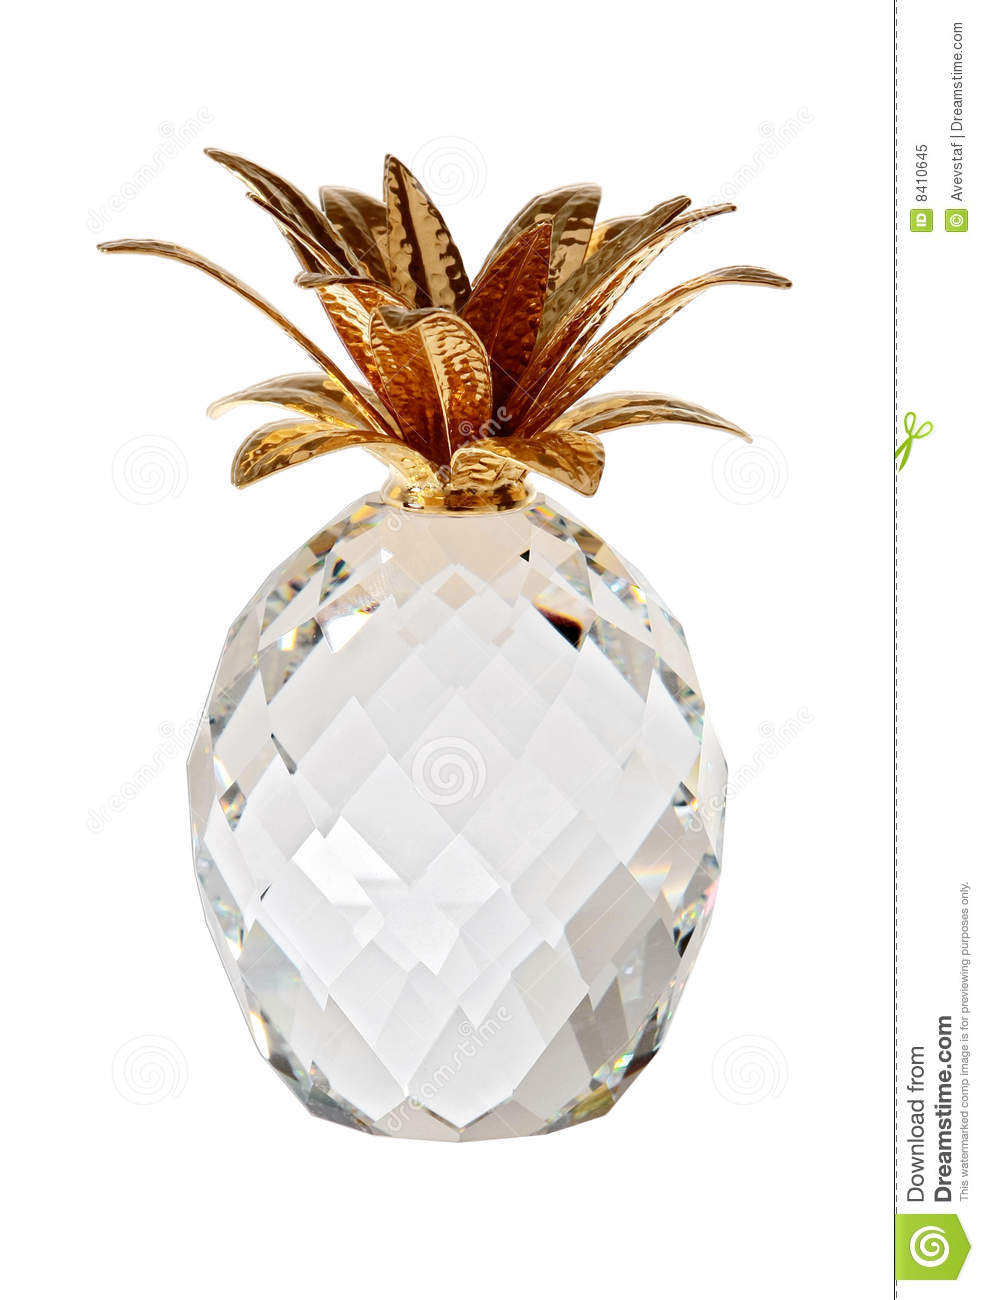 The Glass Pineapple Royalty Free Stock Photo Image 8410645